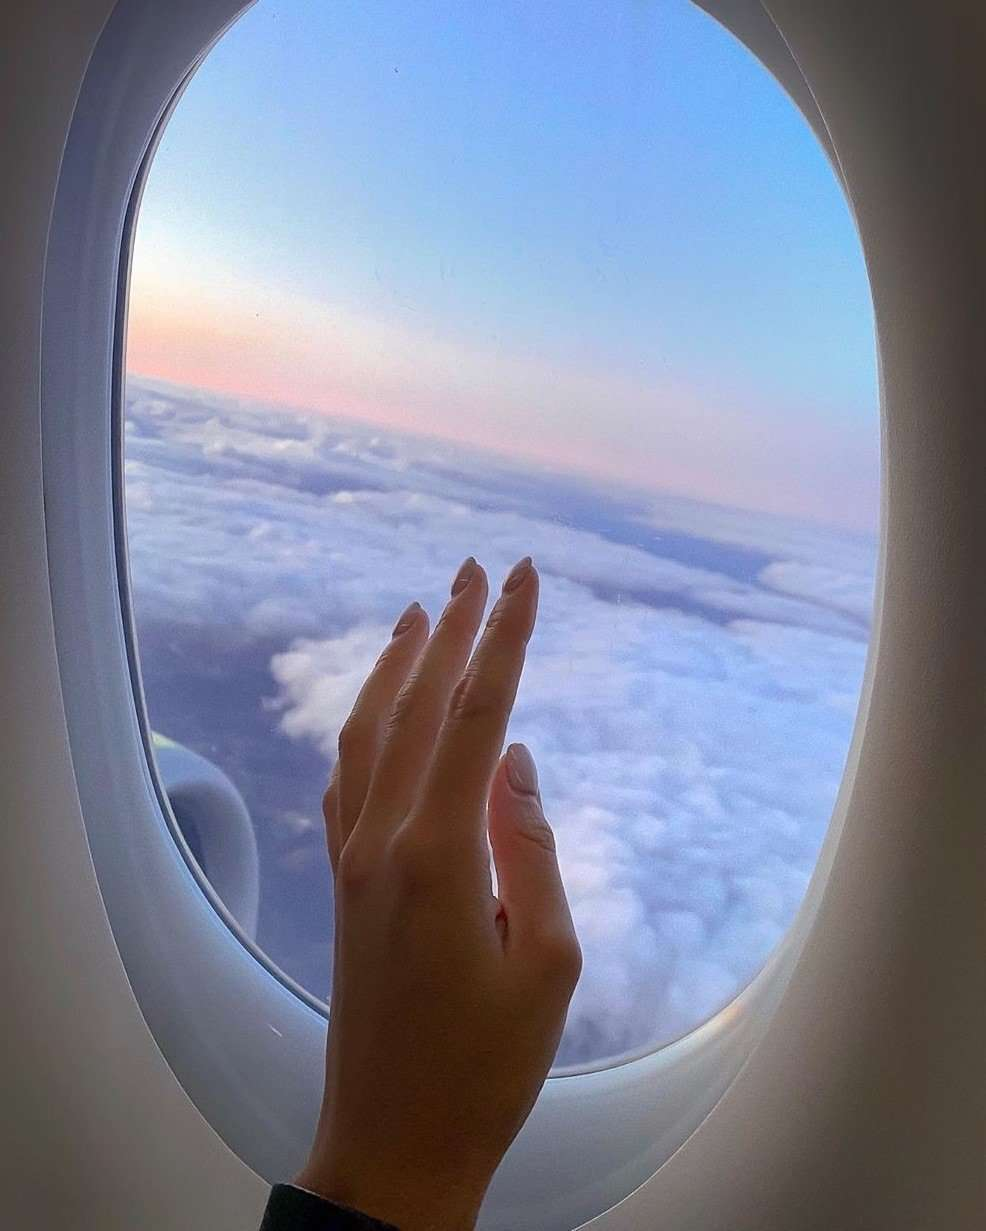 TRAVELING WITH CBD: CAN YOU TAKE CBD OIL ON A PLANE?